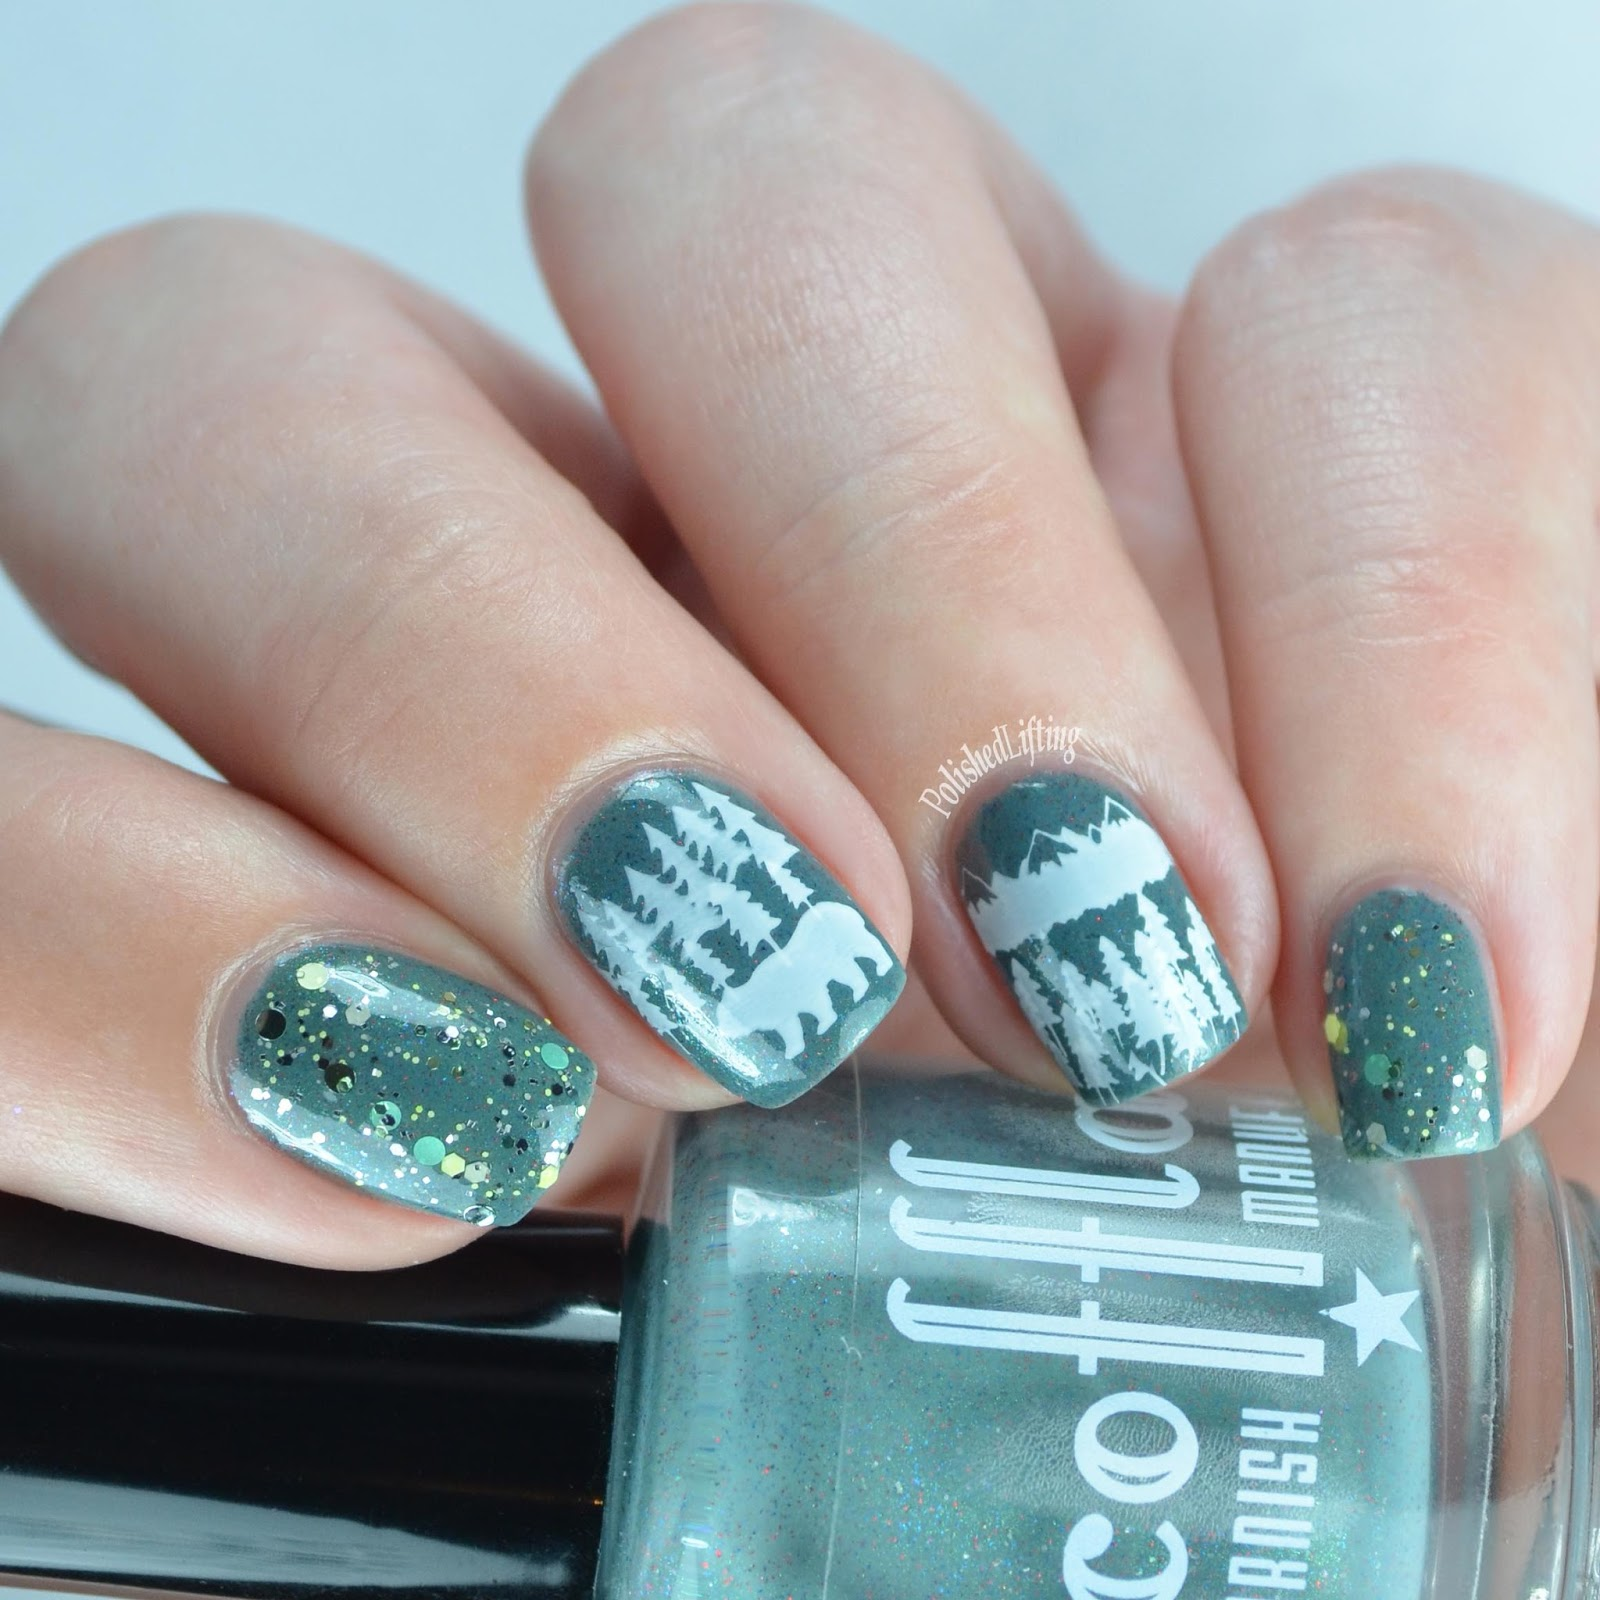 Nail Polish Marbling Letters | Hession Hairdressing